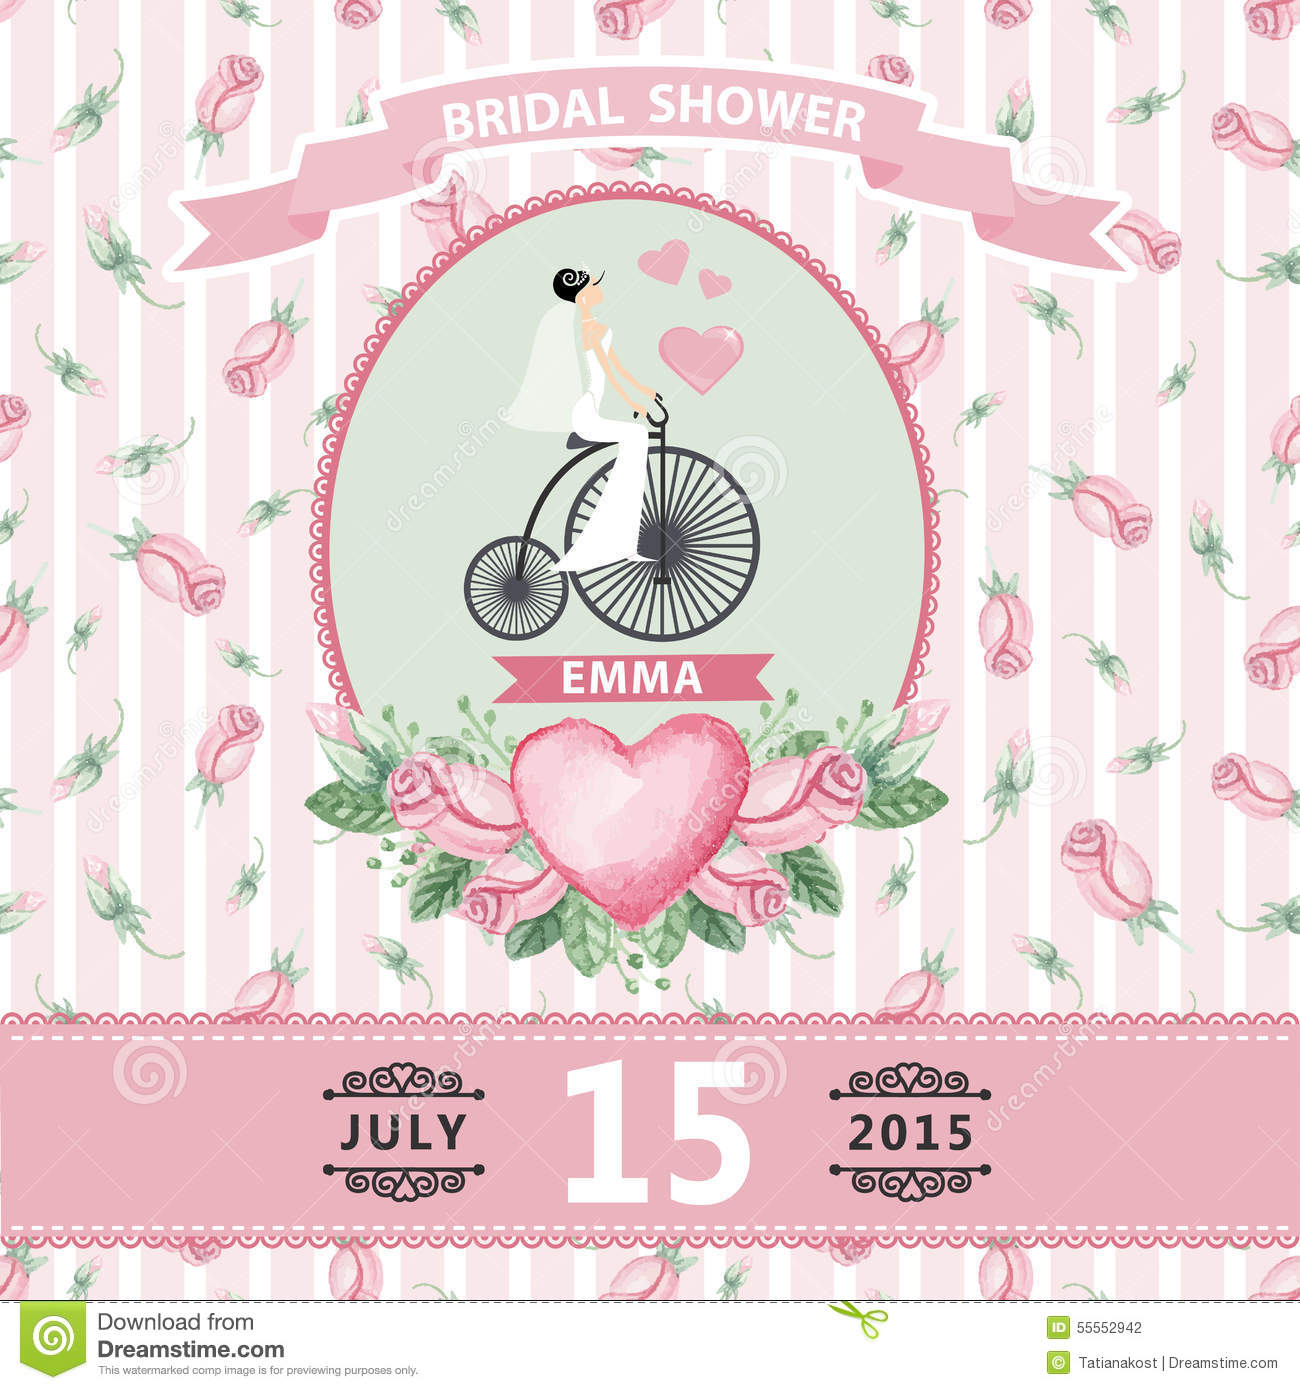 retro wedding invitationbridal shower design template with watercolor roses budbouquet retro bicycledecorative hand drawing floral decorlabel ribbons